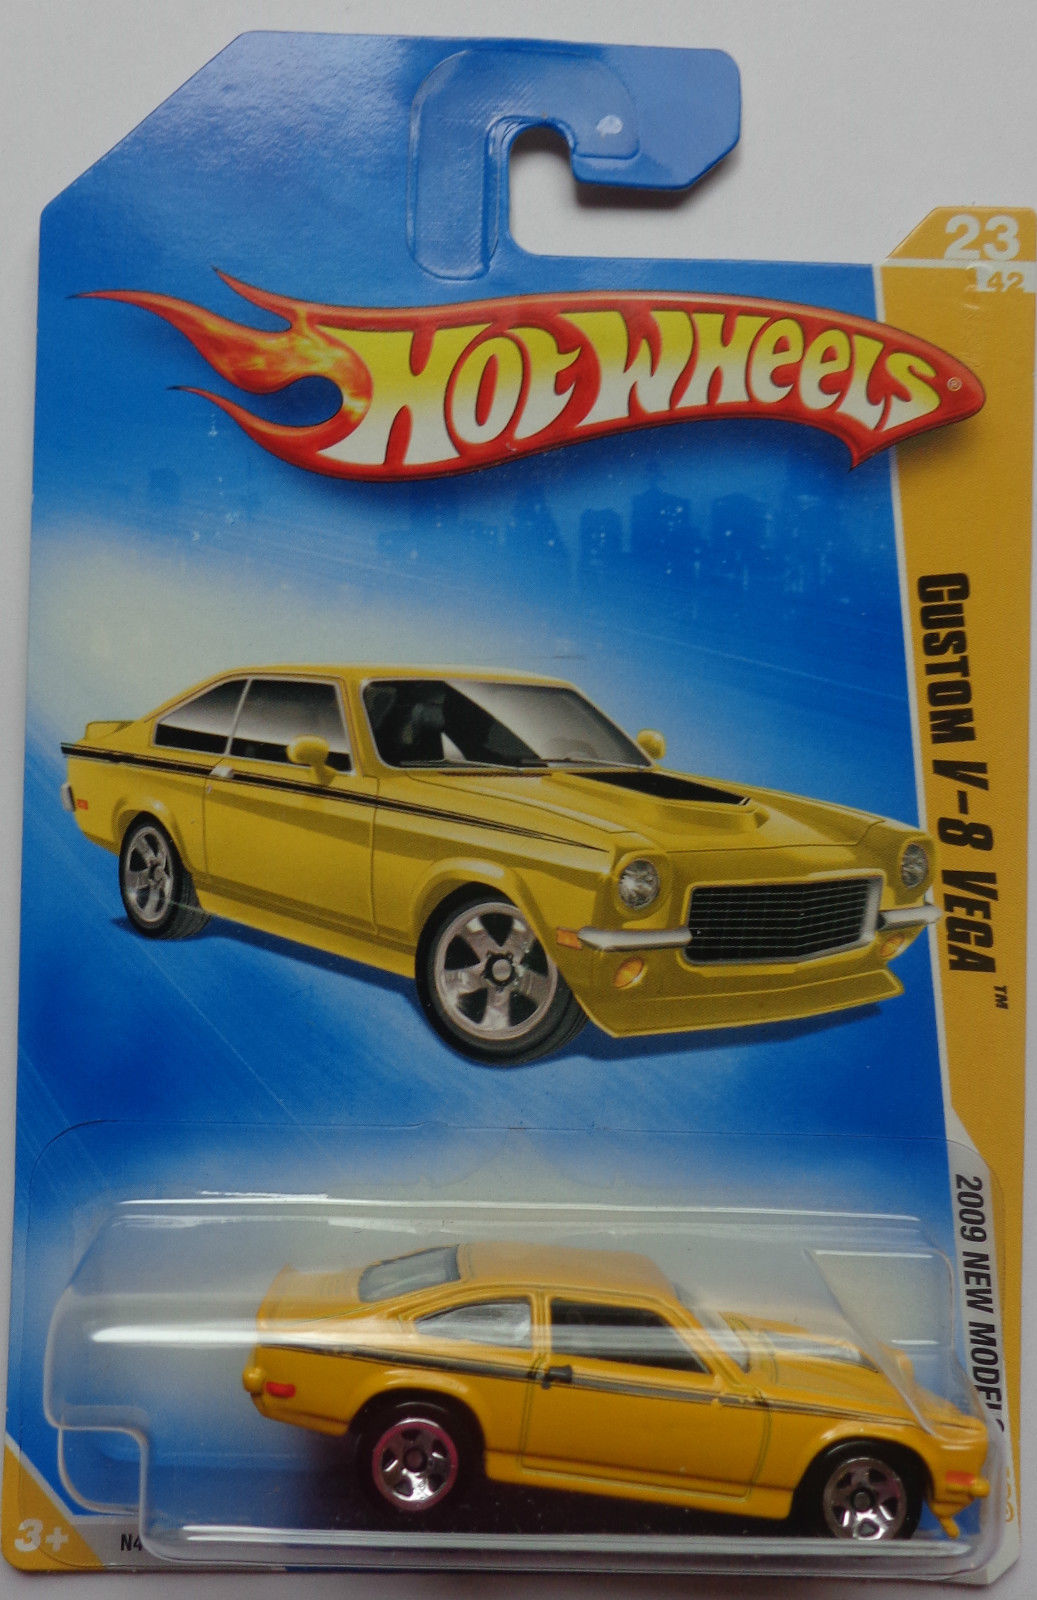 1 5 2009 Hot Wheels Models Custom V 8 Vega 23 42 Yellow 5